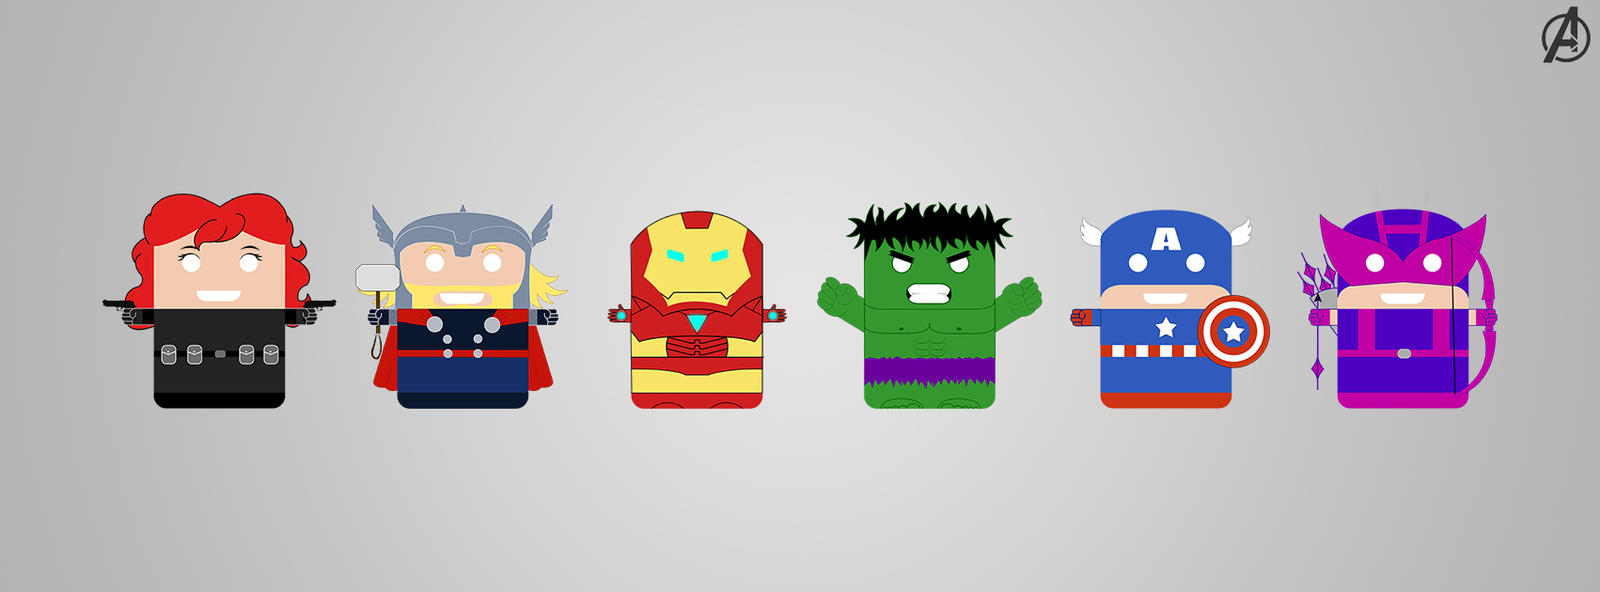 Avengers Assemble by Basolian